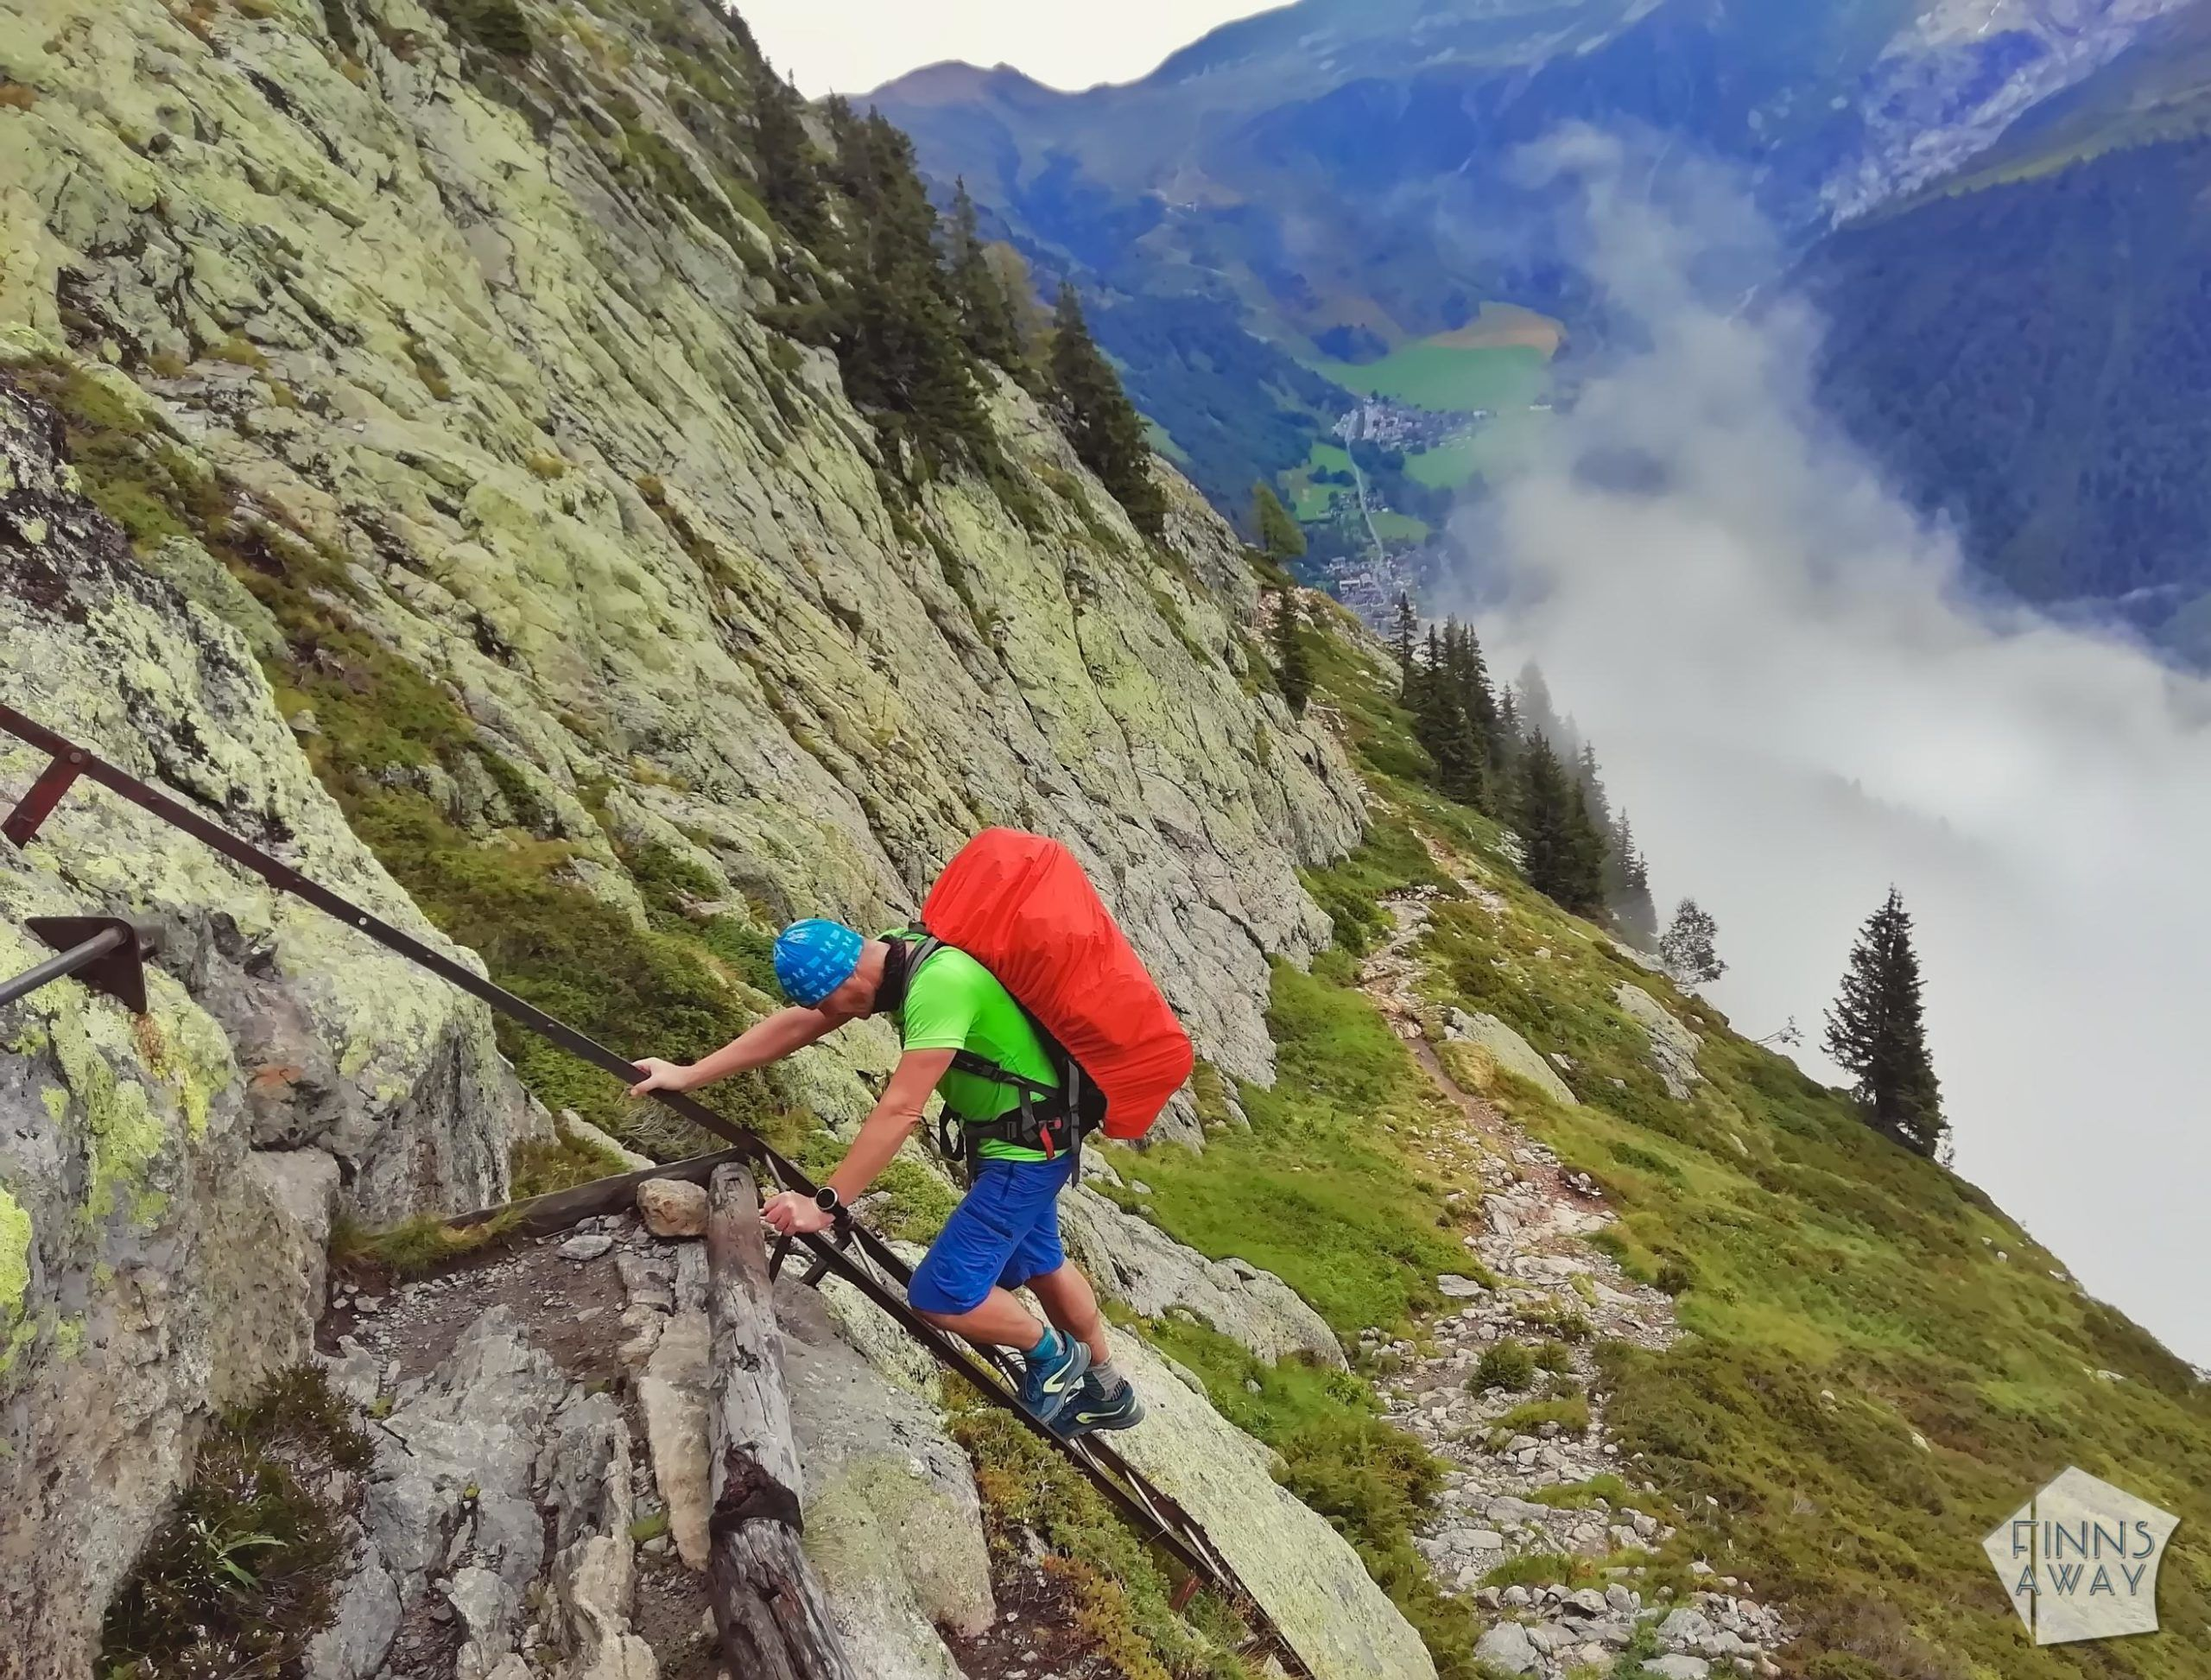 TMB ledders | Hiking and camping Tour du Mont Blanc mountain trail in the Alps | FinnsAway travel blog